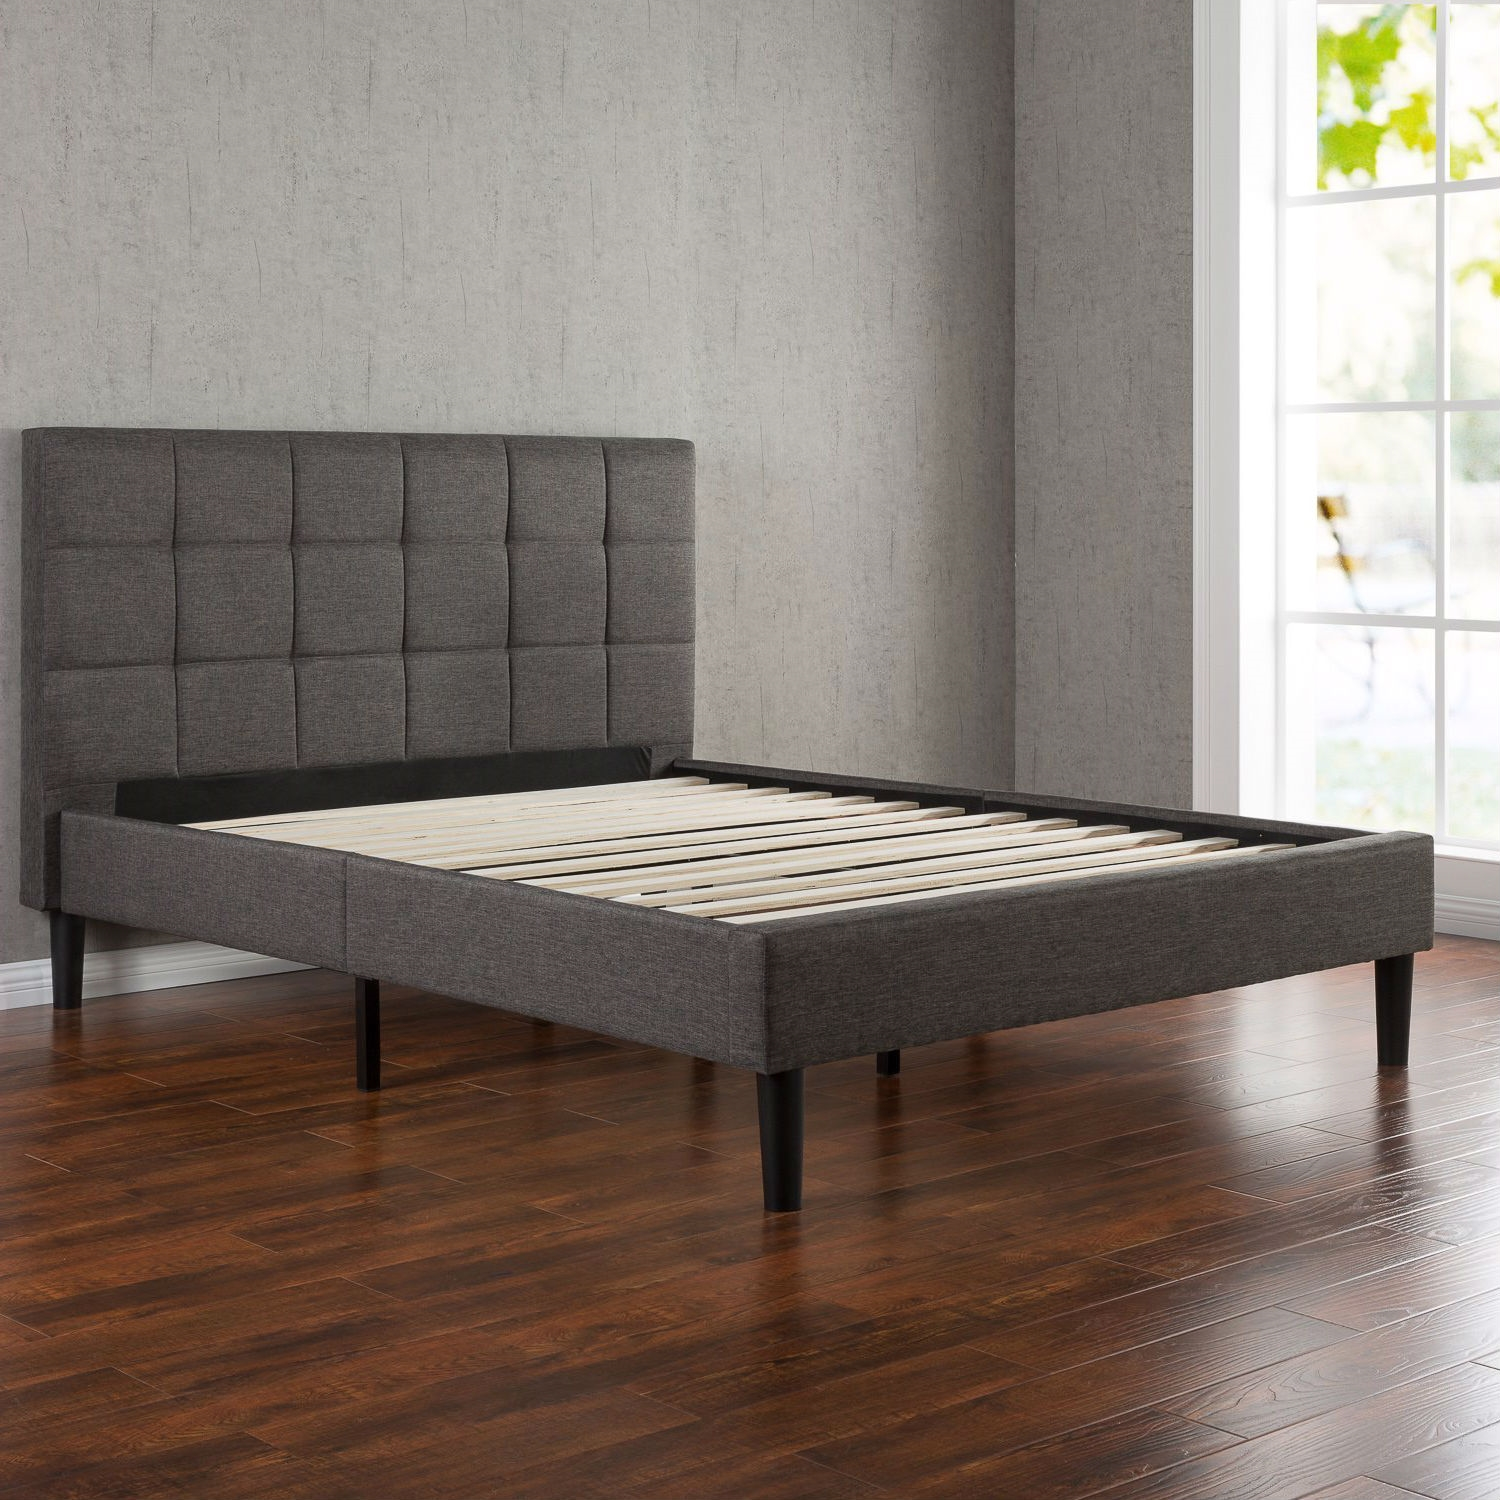 twin headboard concord urbanlifestyleconcordbed cfm lifestyle product detail with platform bed urban hayneedle